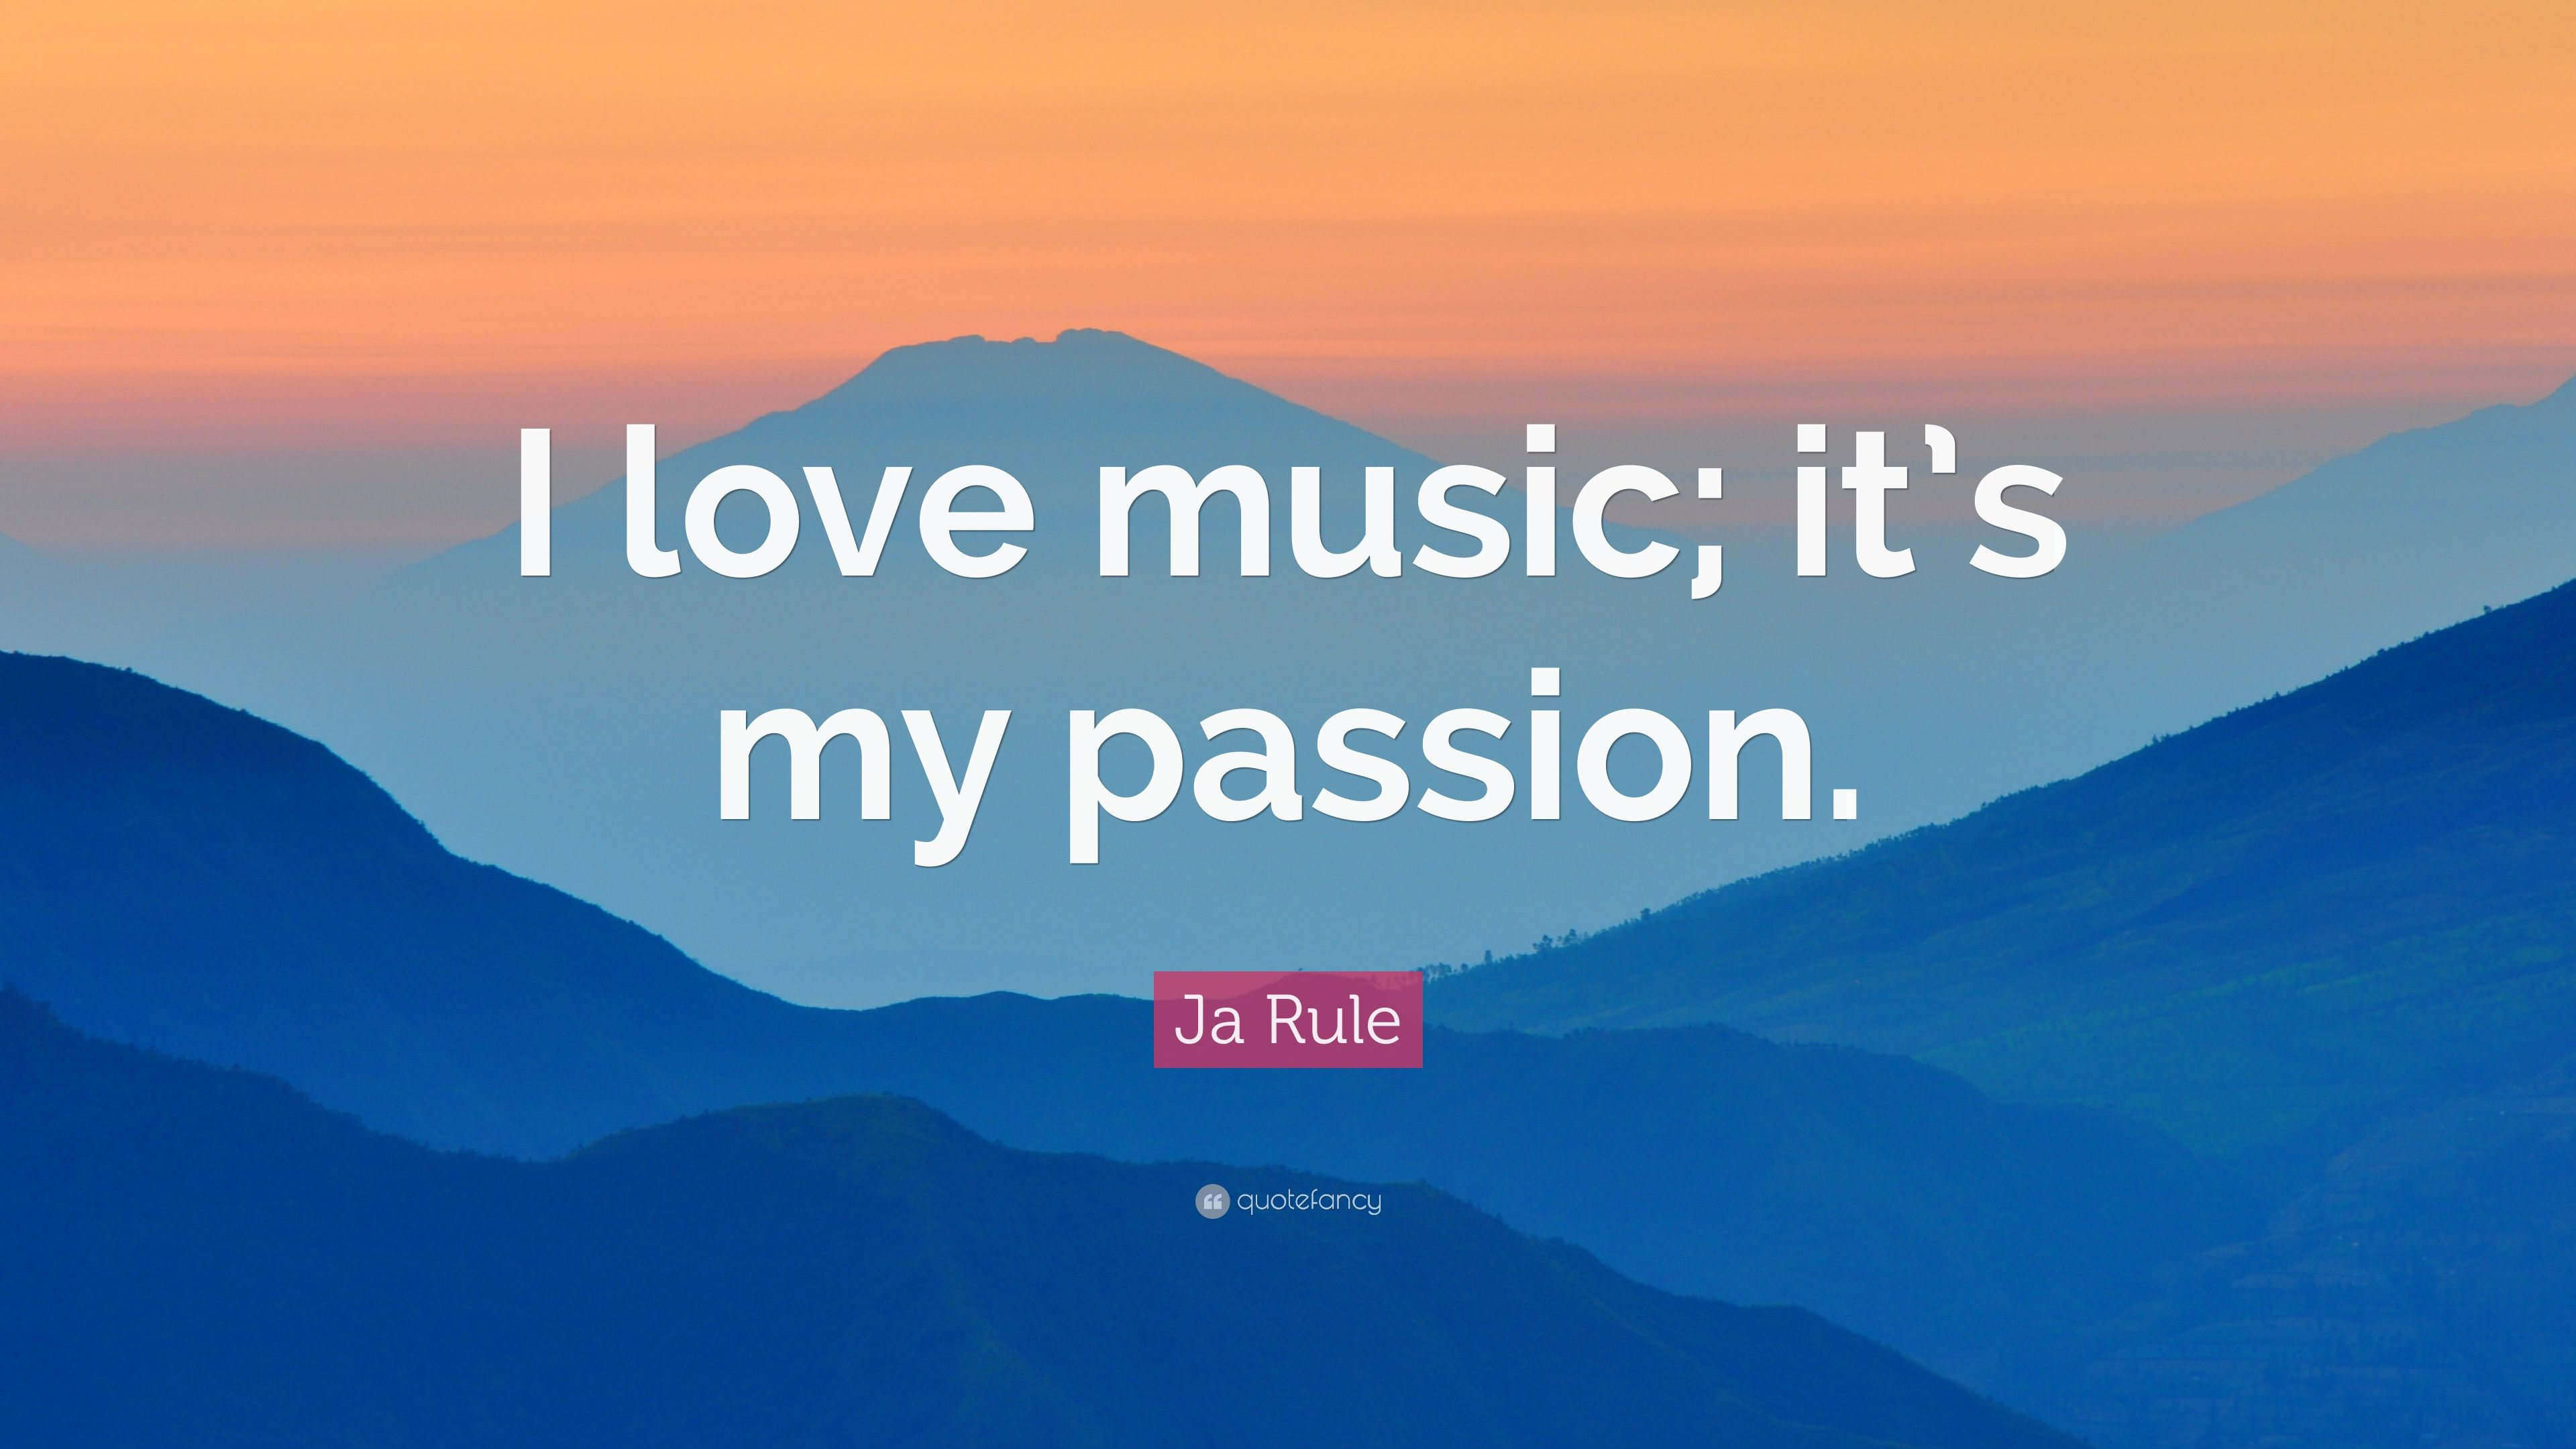 """Ja Rule Love Quotes Classy ja rule quote: """"i love music; it's my passion."""" (9 wallpapers"""